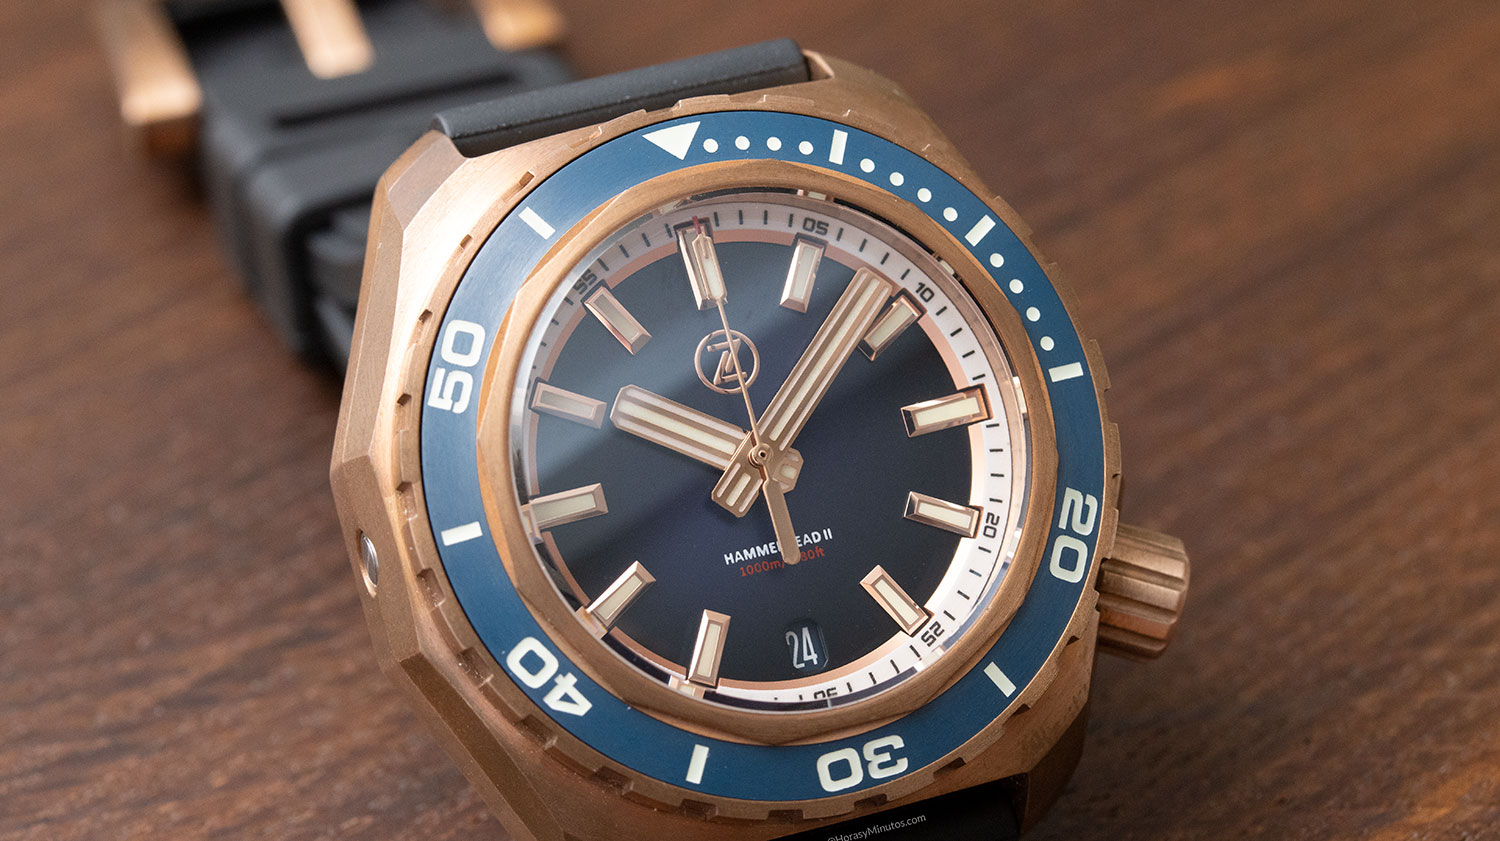 Esfera del Super-LumiNova en el Zelos Watches Hammerhead 1000 M Bronze Midnight Blue